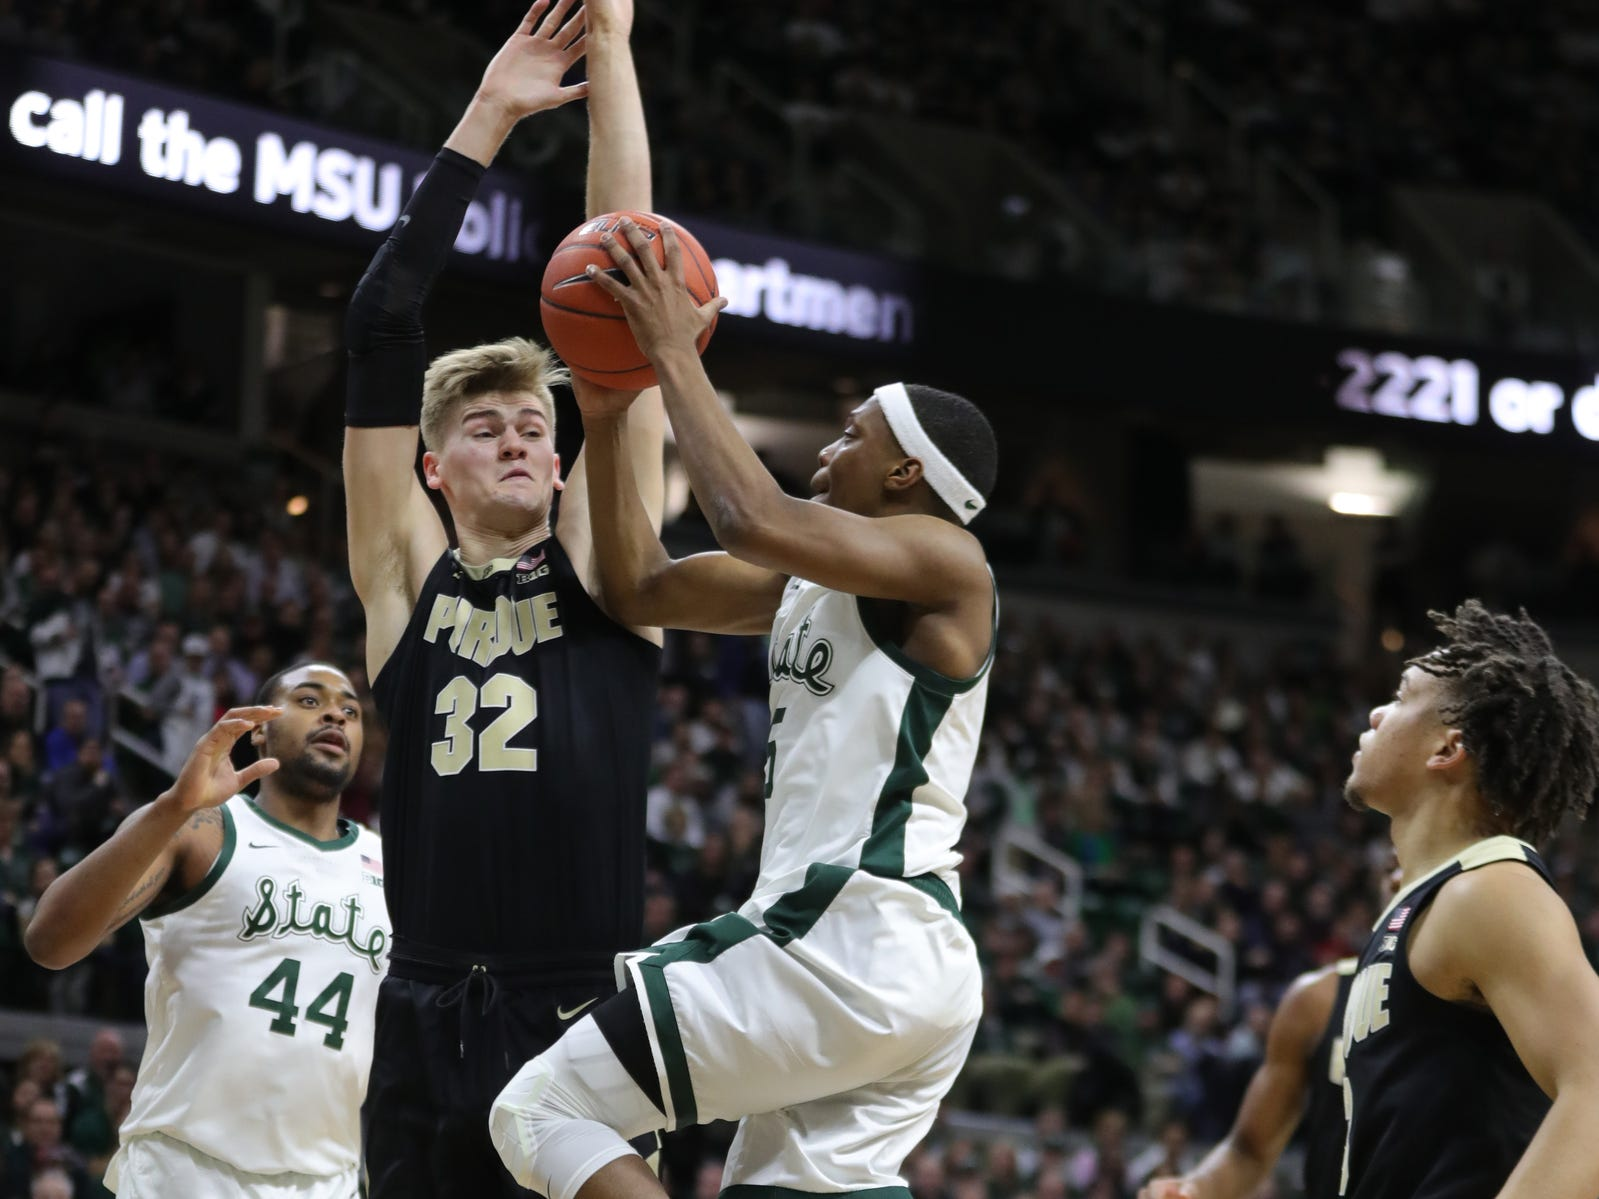 Michigan State guard Cassius Winston scores against Purdue center Matt Haarms during first half action Tuesday, September 8, 2019 at the Breslin Center in East Lansing, Mich.